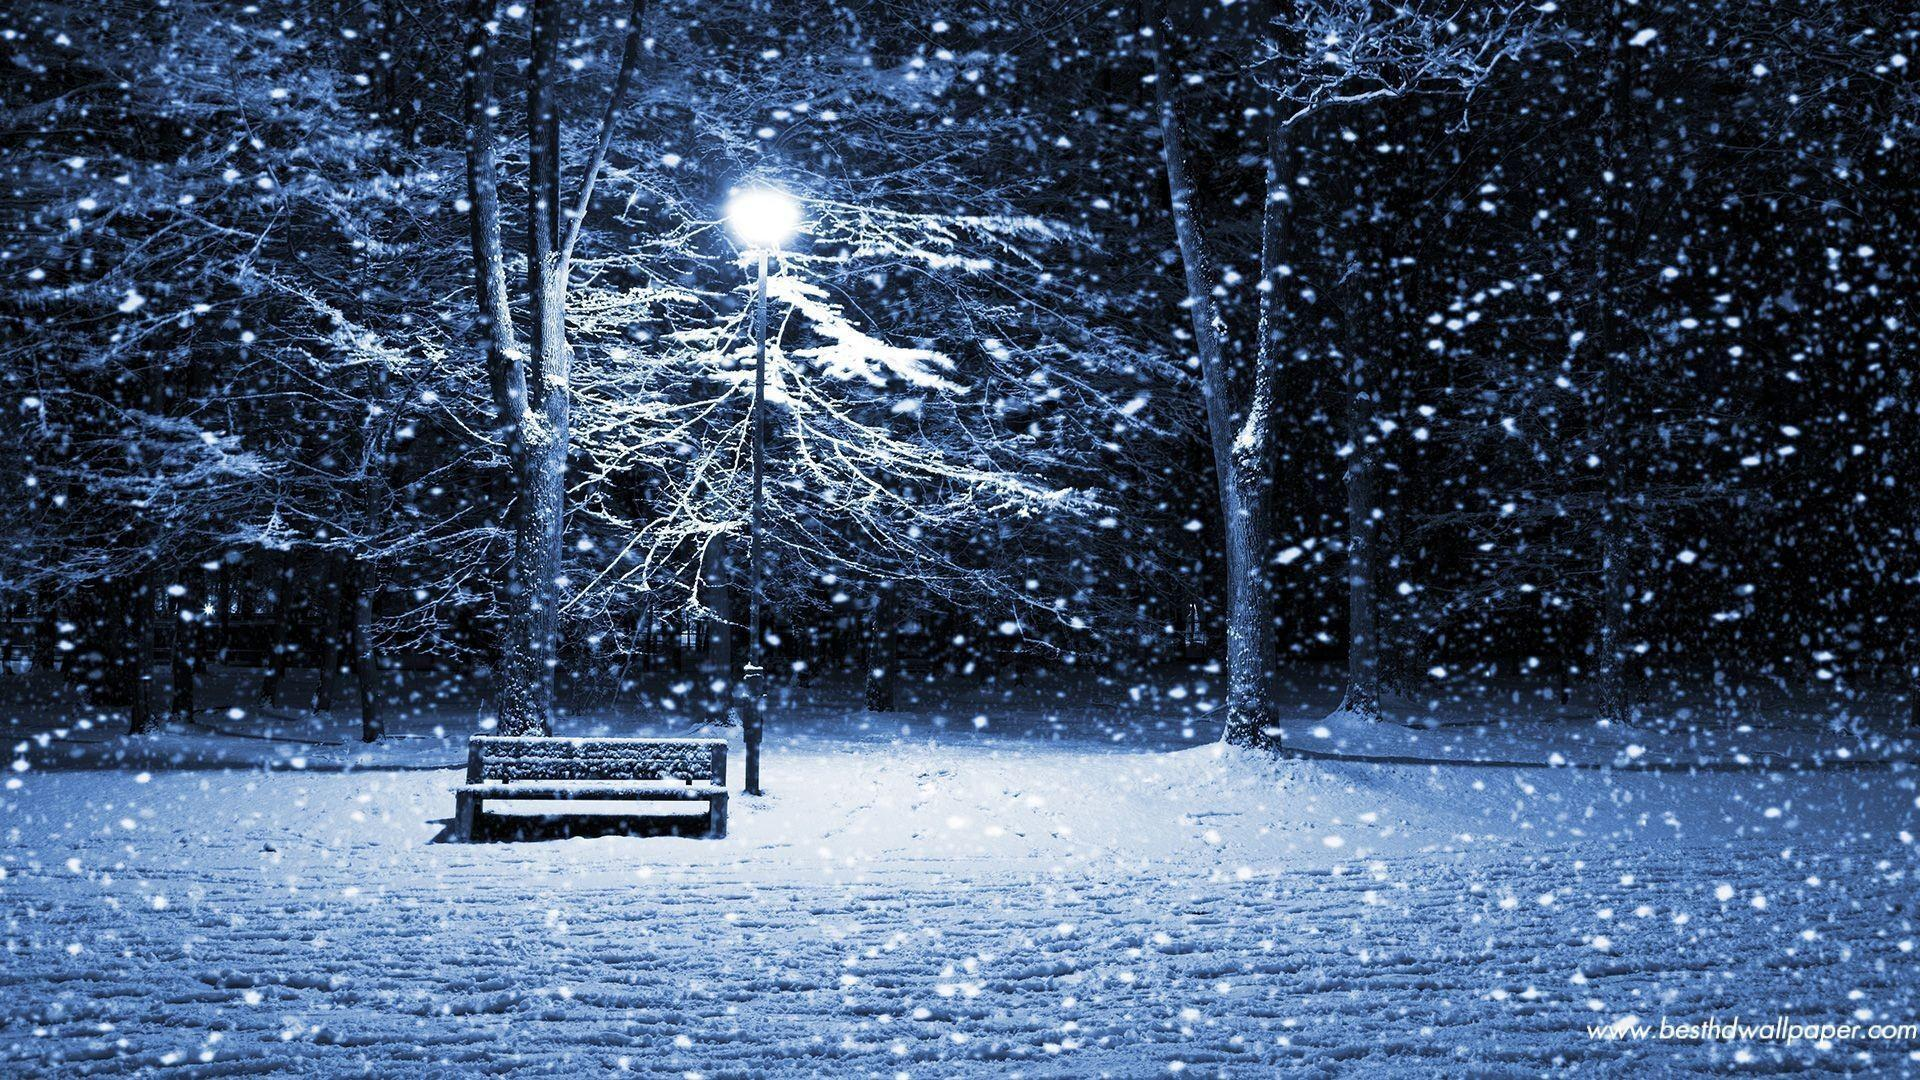 Christmas Snow Wallpaper image